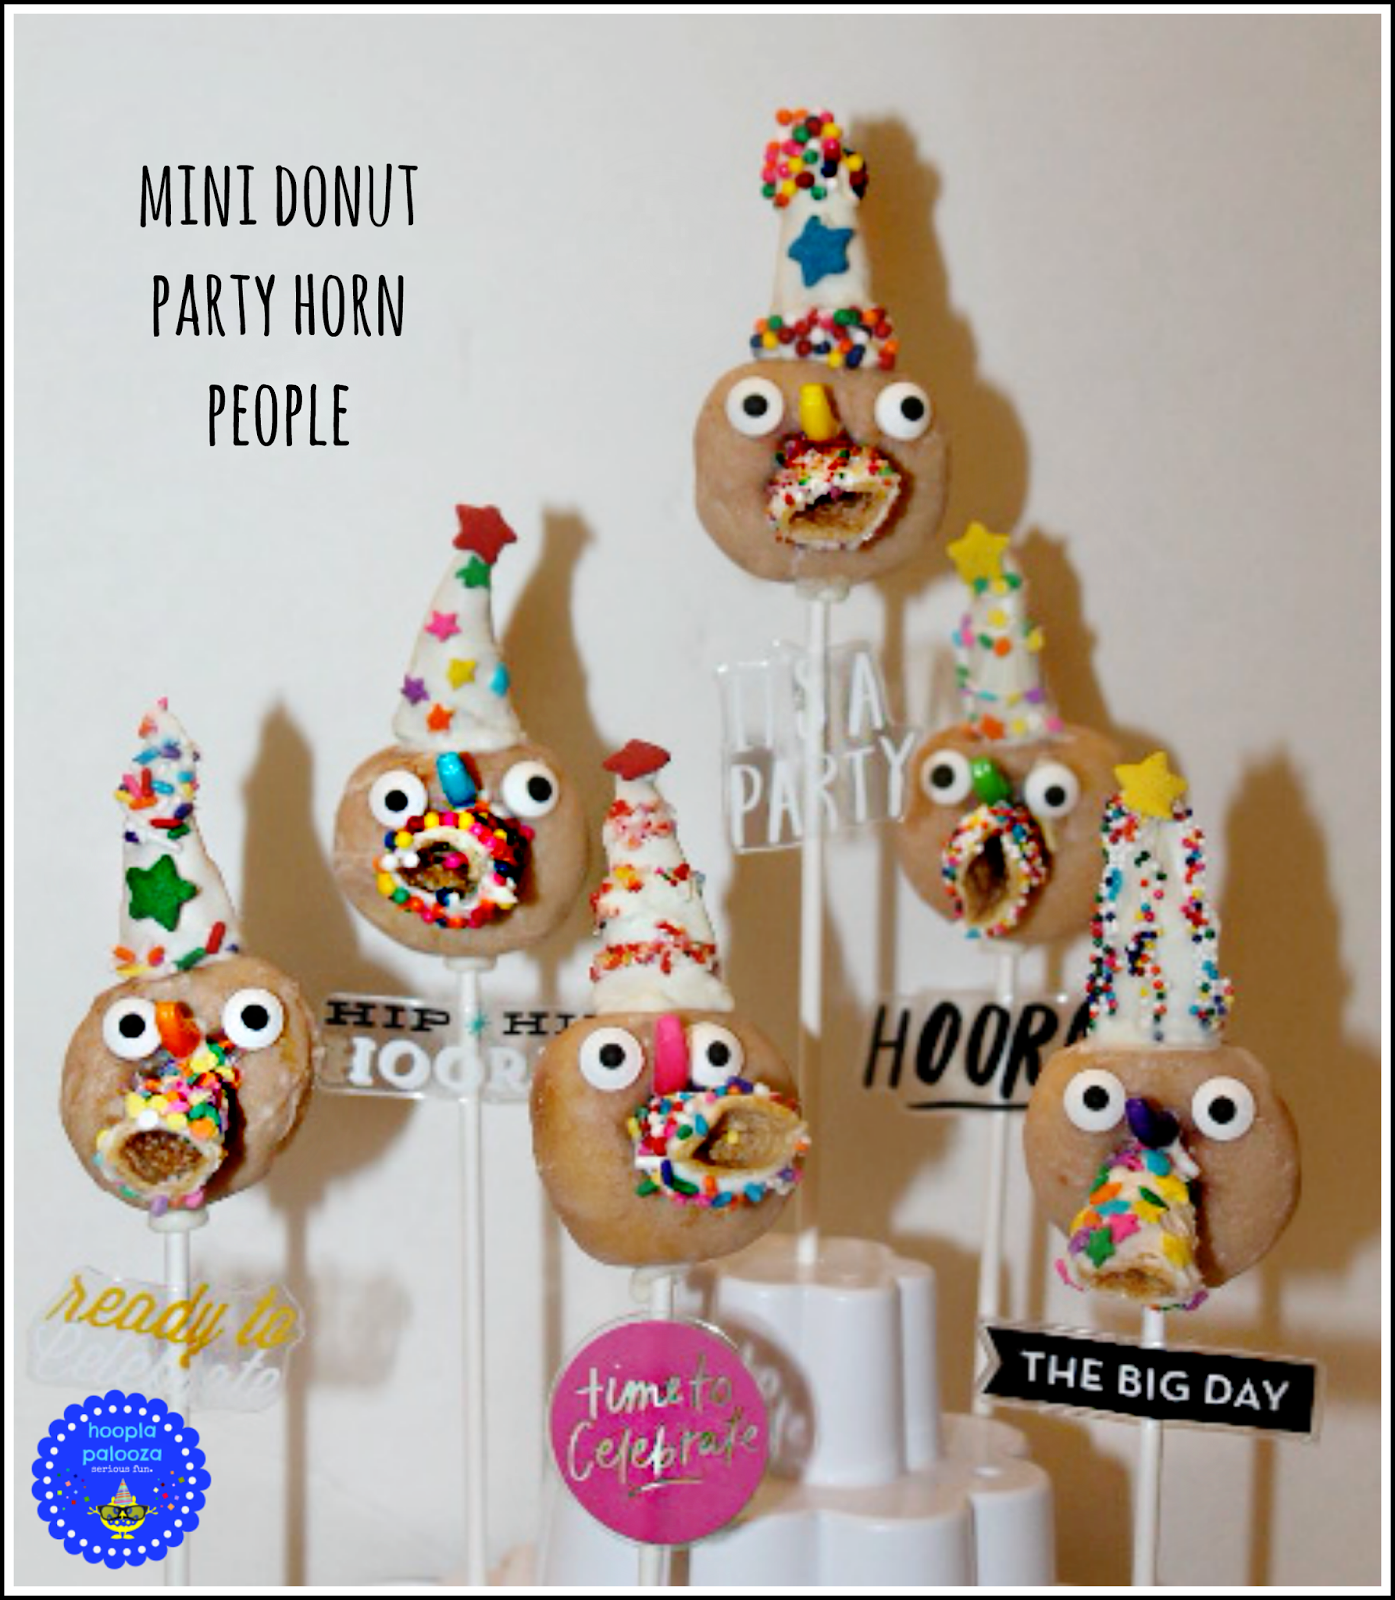 These are hysterical and fun! Mini Donut Party Horn People from Hoopla Palooza